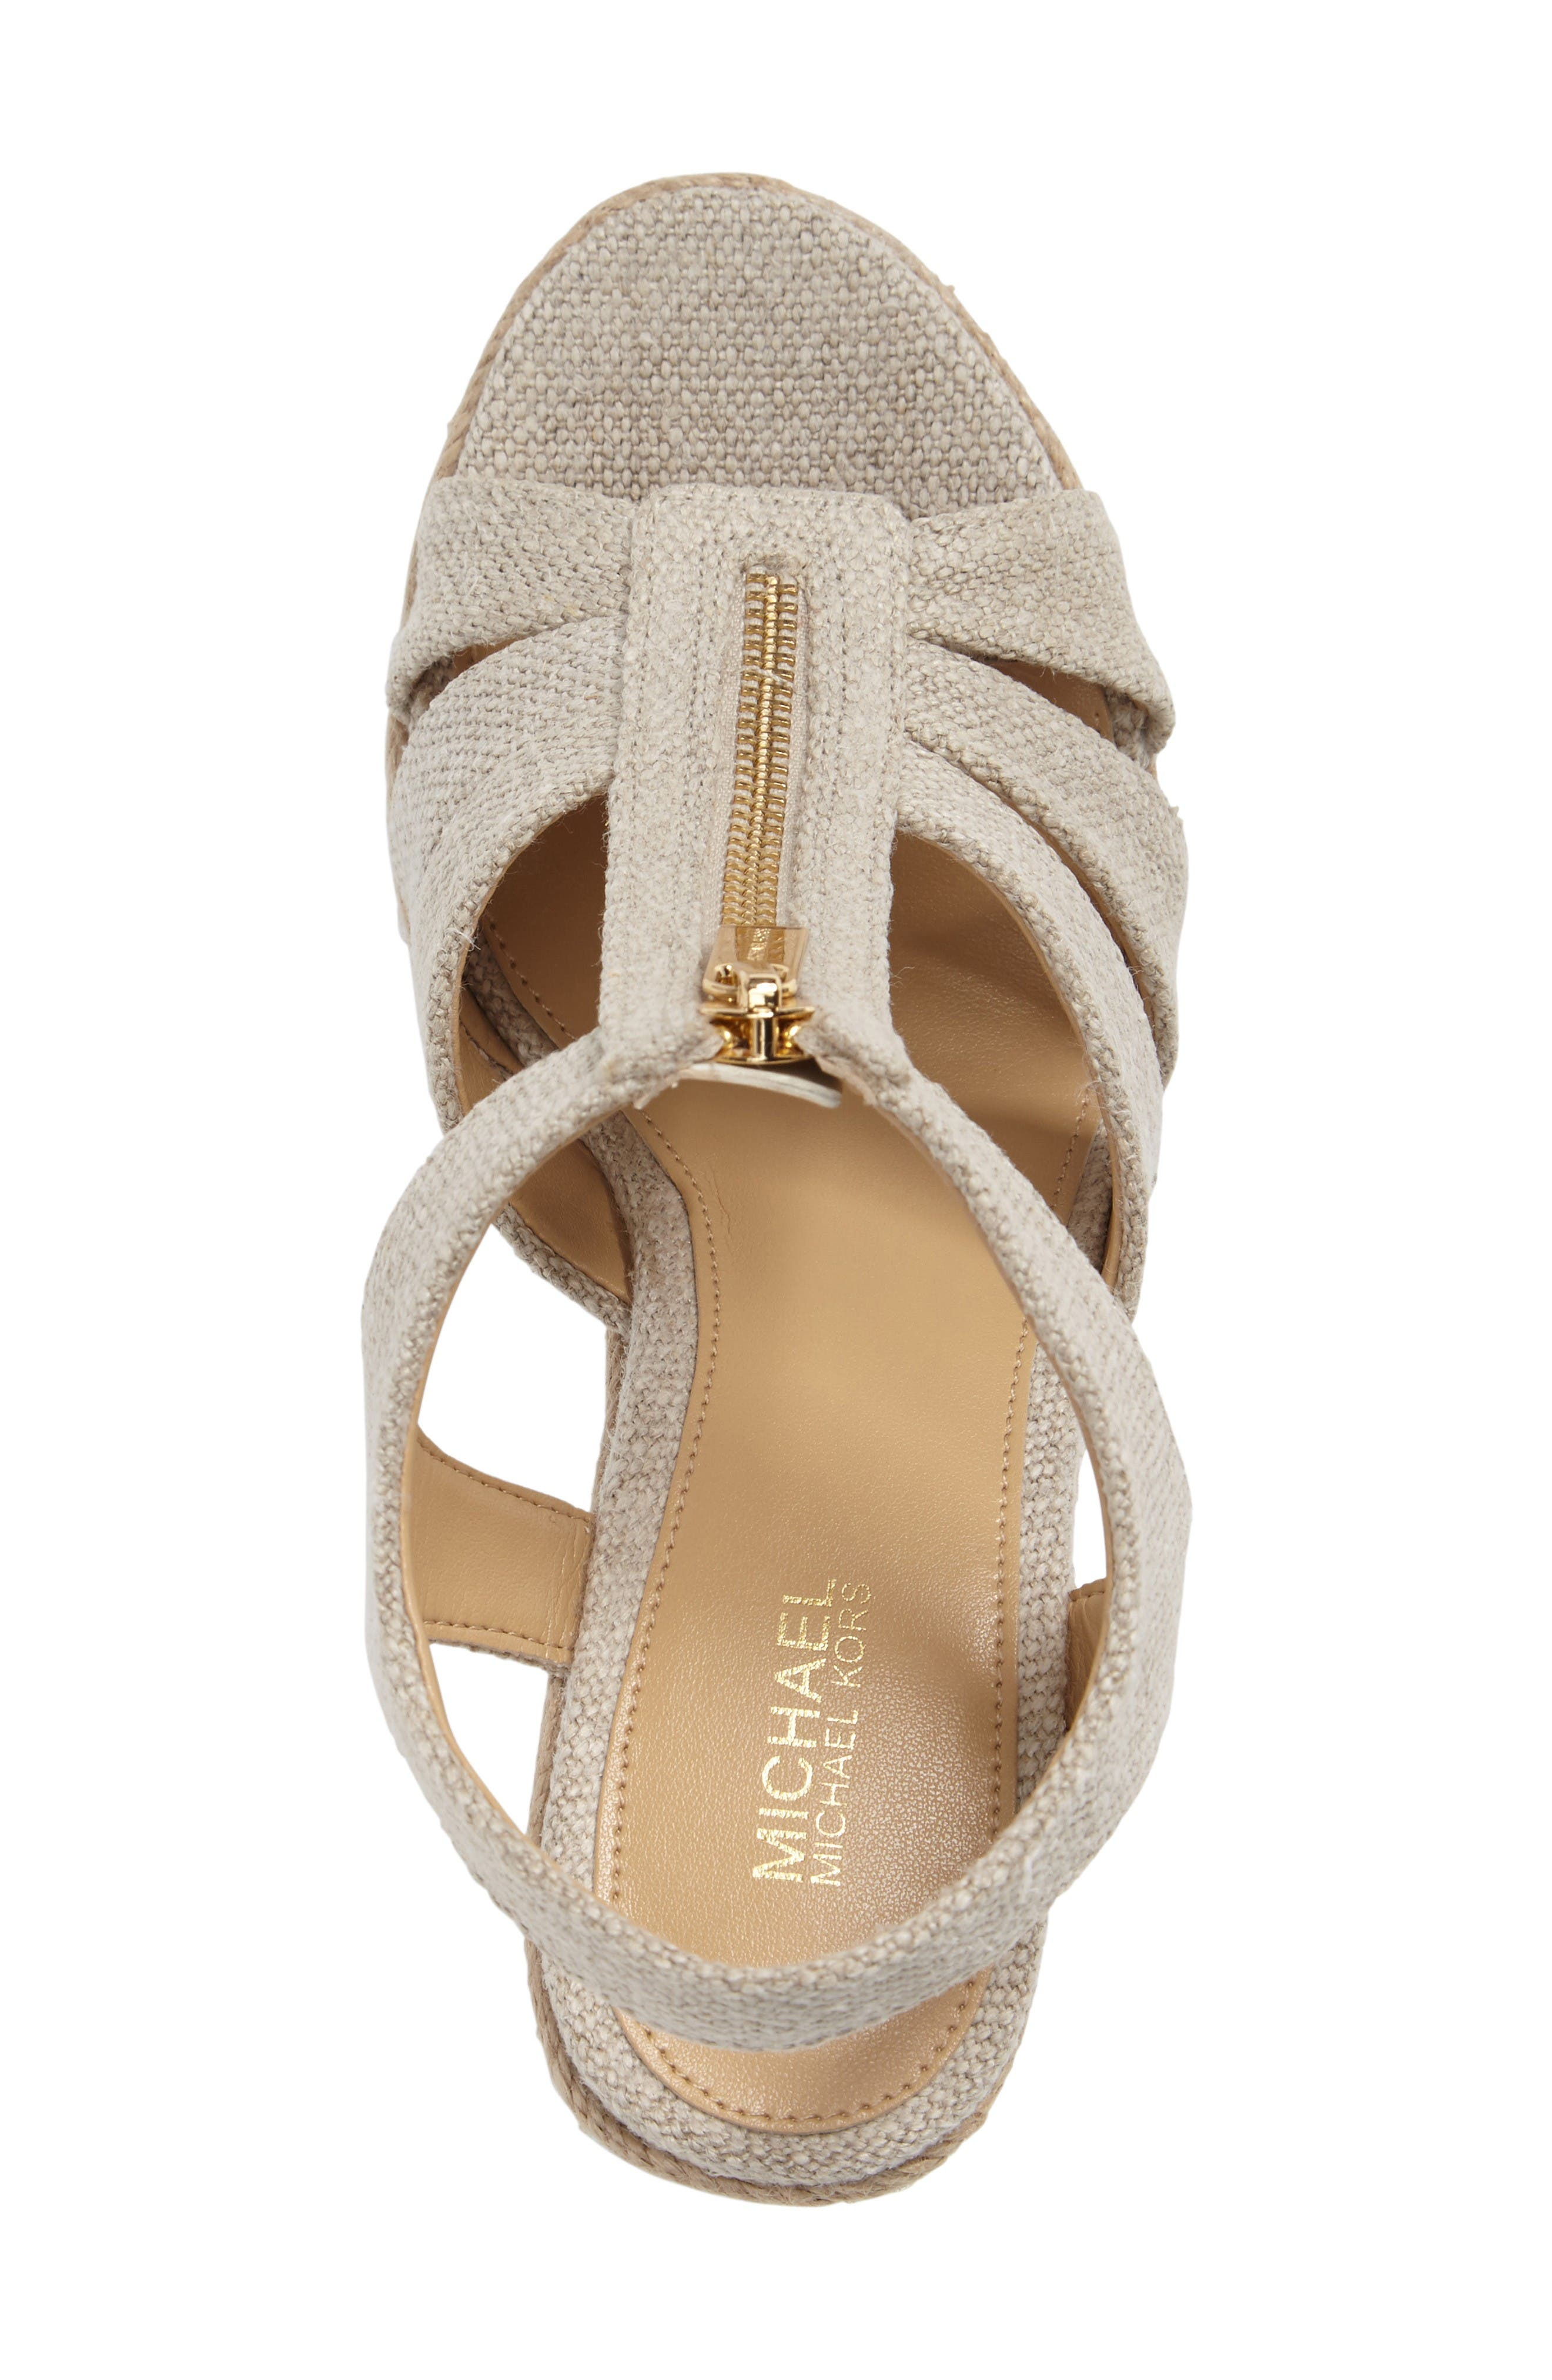 MICHAEL MICHAEL KORS BERKLEY PLATFORM WEDGE, NATURAL FABRIC